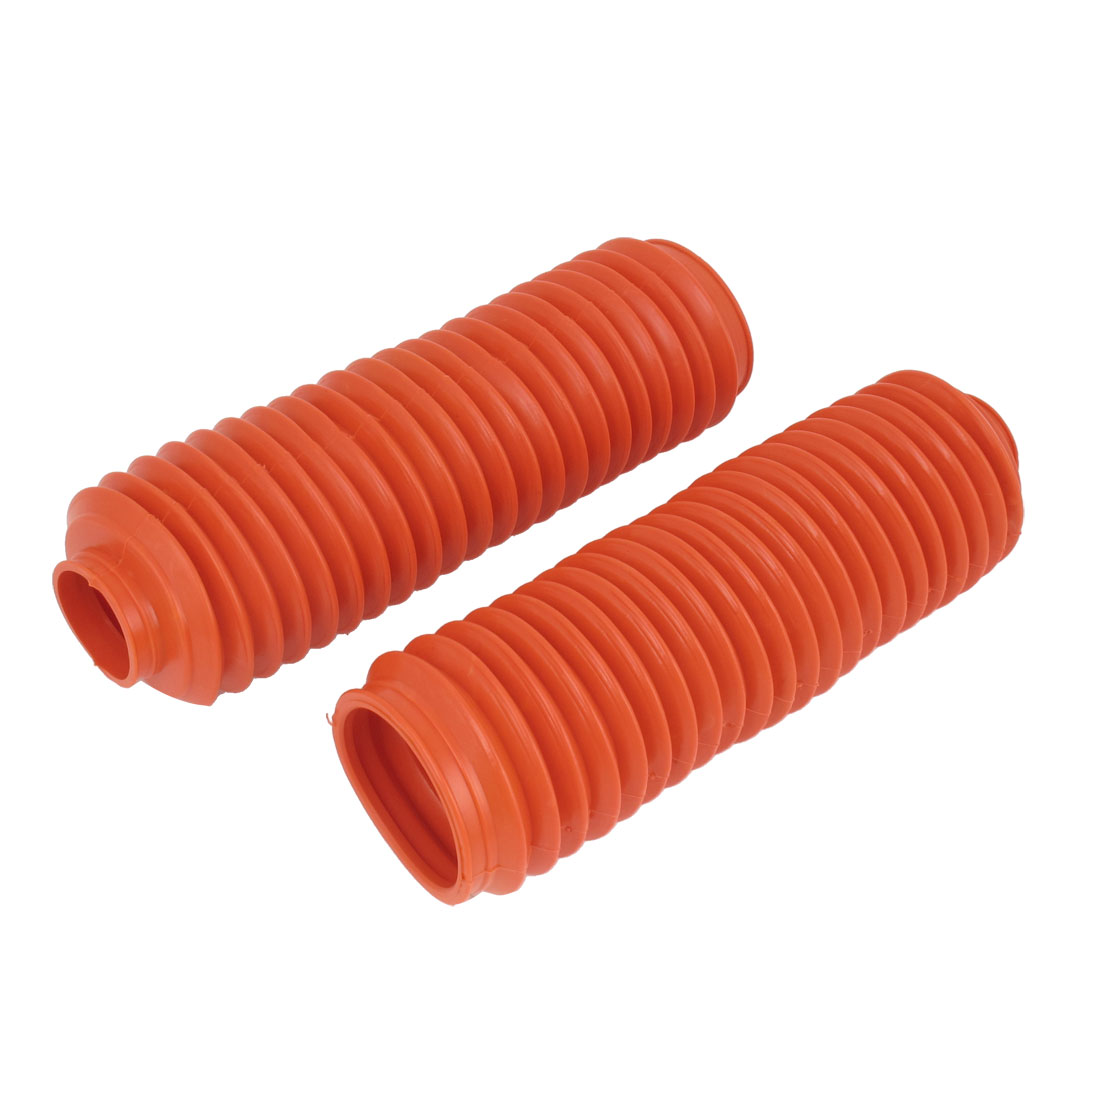 Autobicycle Red Rubber Front Shock Absorber Protection Dust Cover Pair 24cm Long